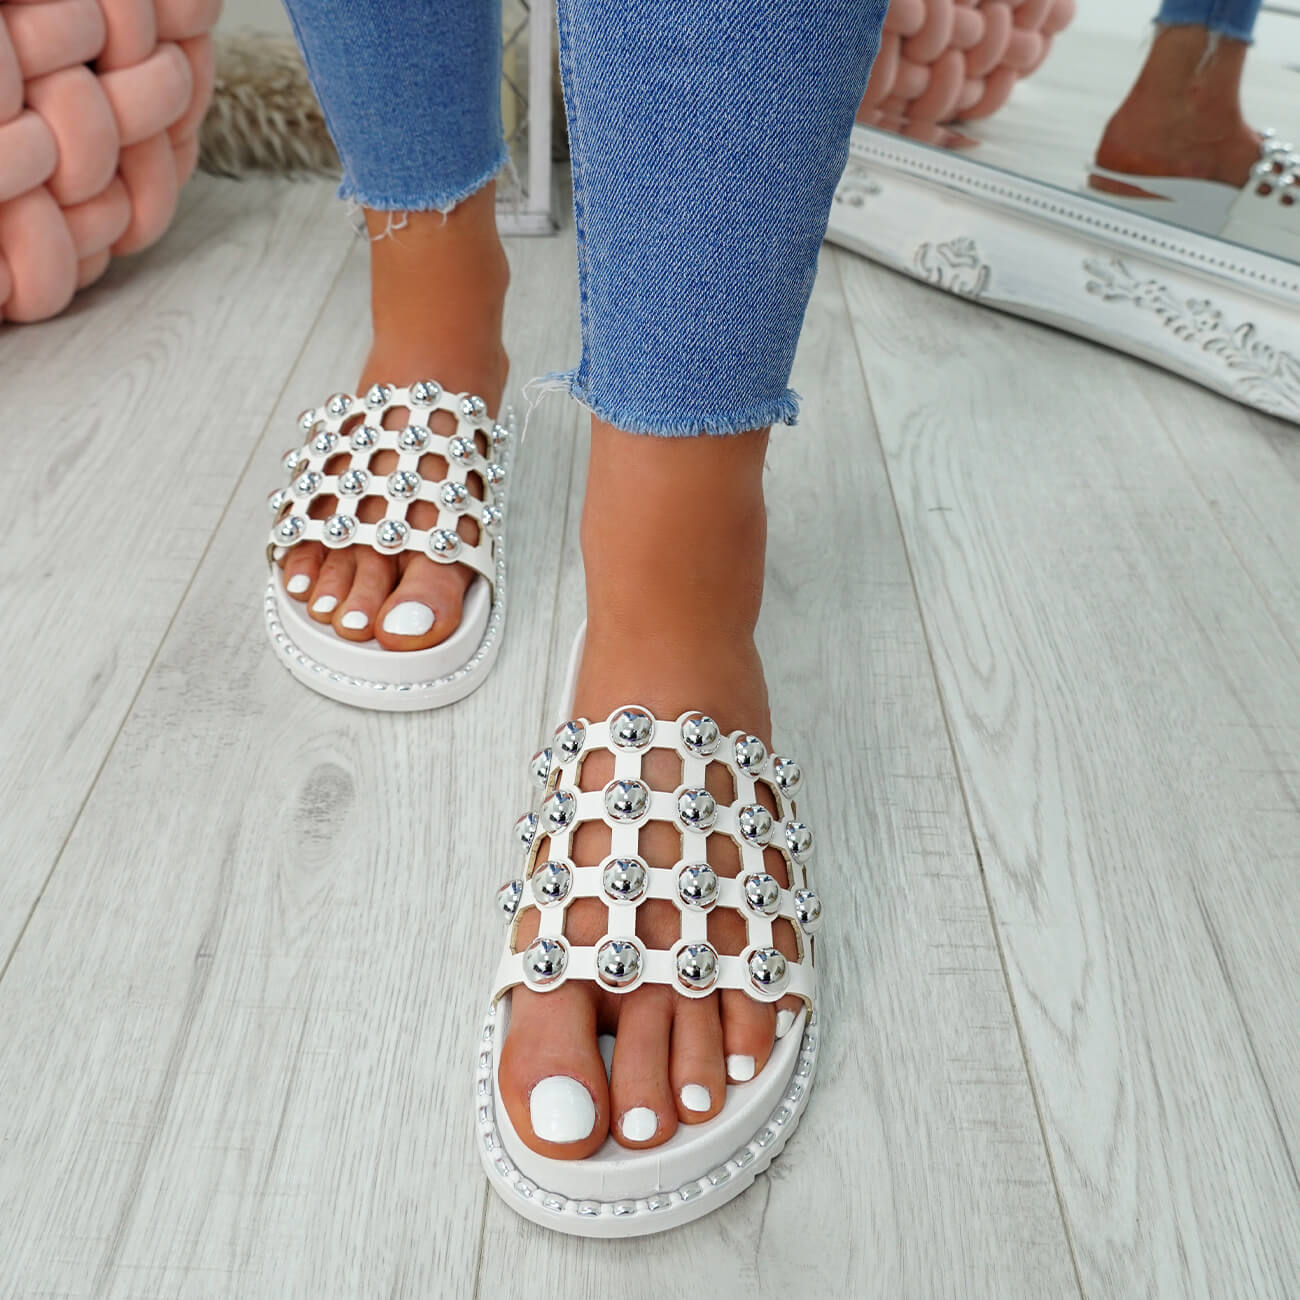 WOMENS-LADIES-PEARL-STUDDED-SLIP-ON-FLAT-SANDALS-HEELS-FLIP-FLOP-SHOES-SIZE thumbnail 23